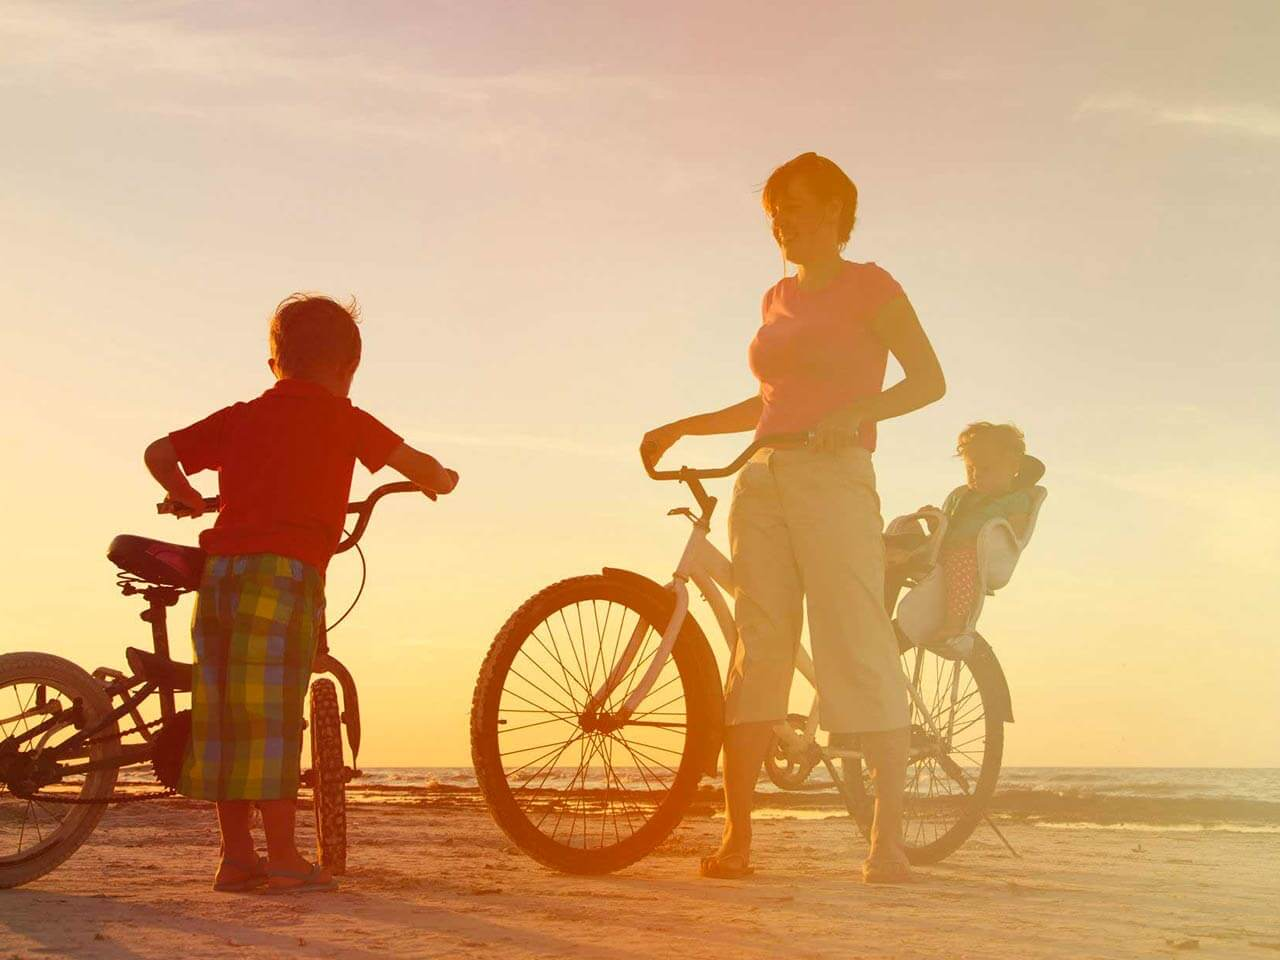 Woman and children on bikes